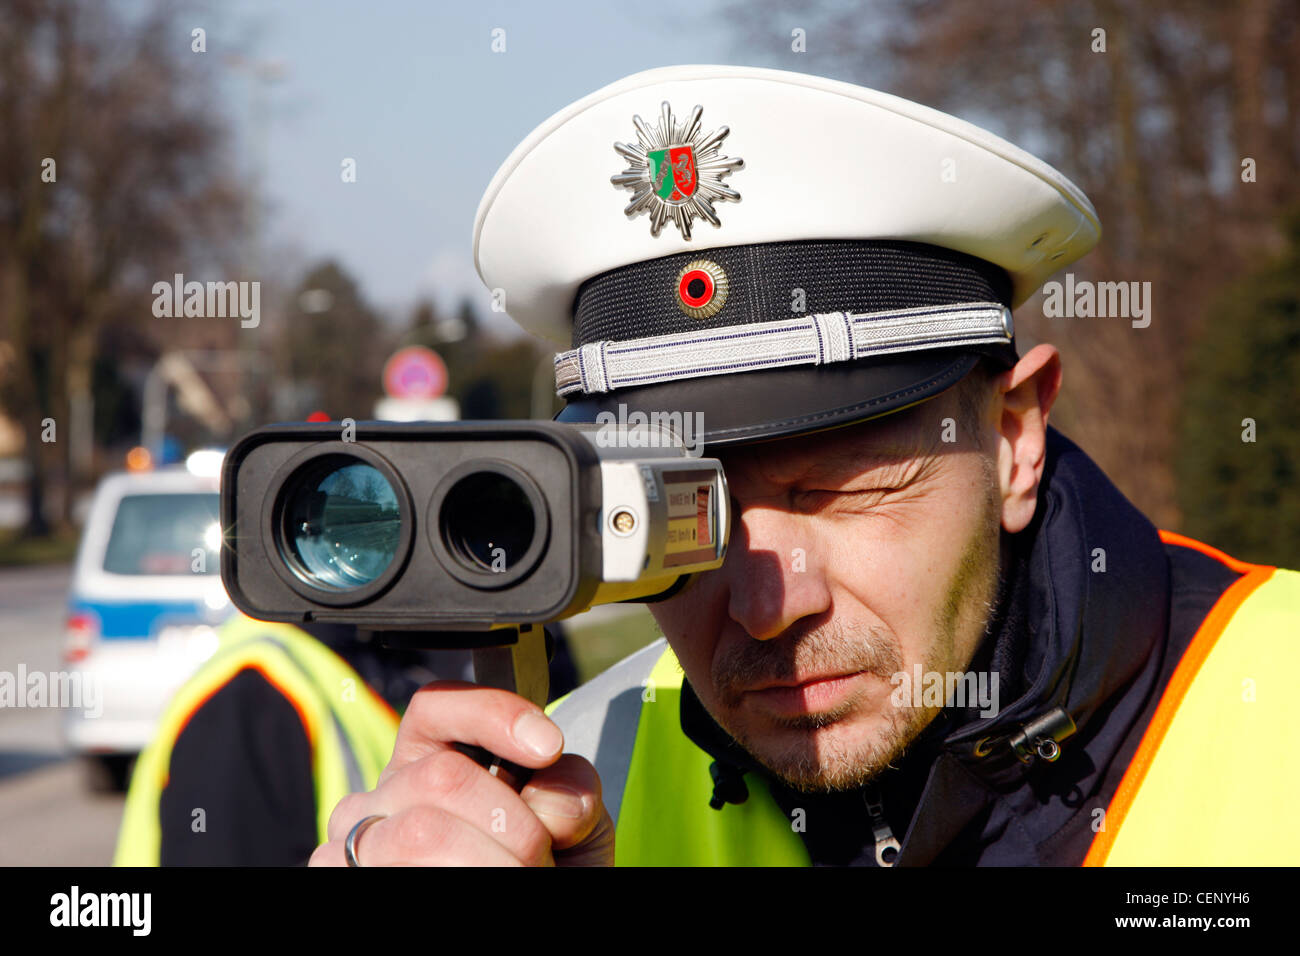 Police control, traffic speed control by a laser measuring system. - Stock Image